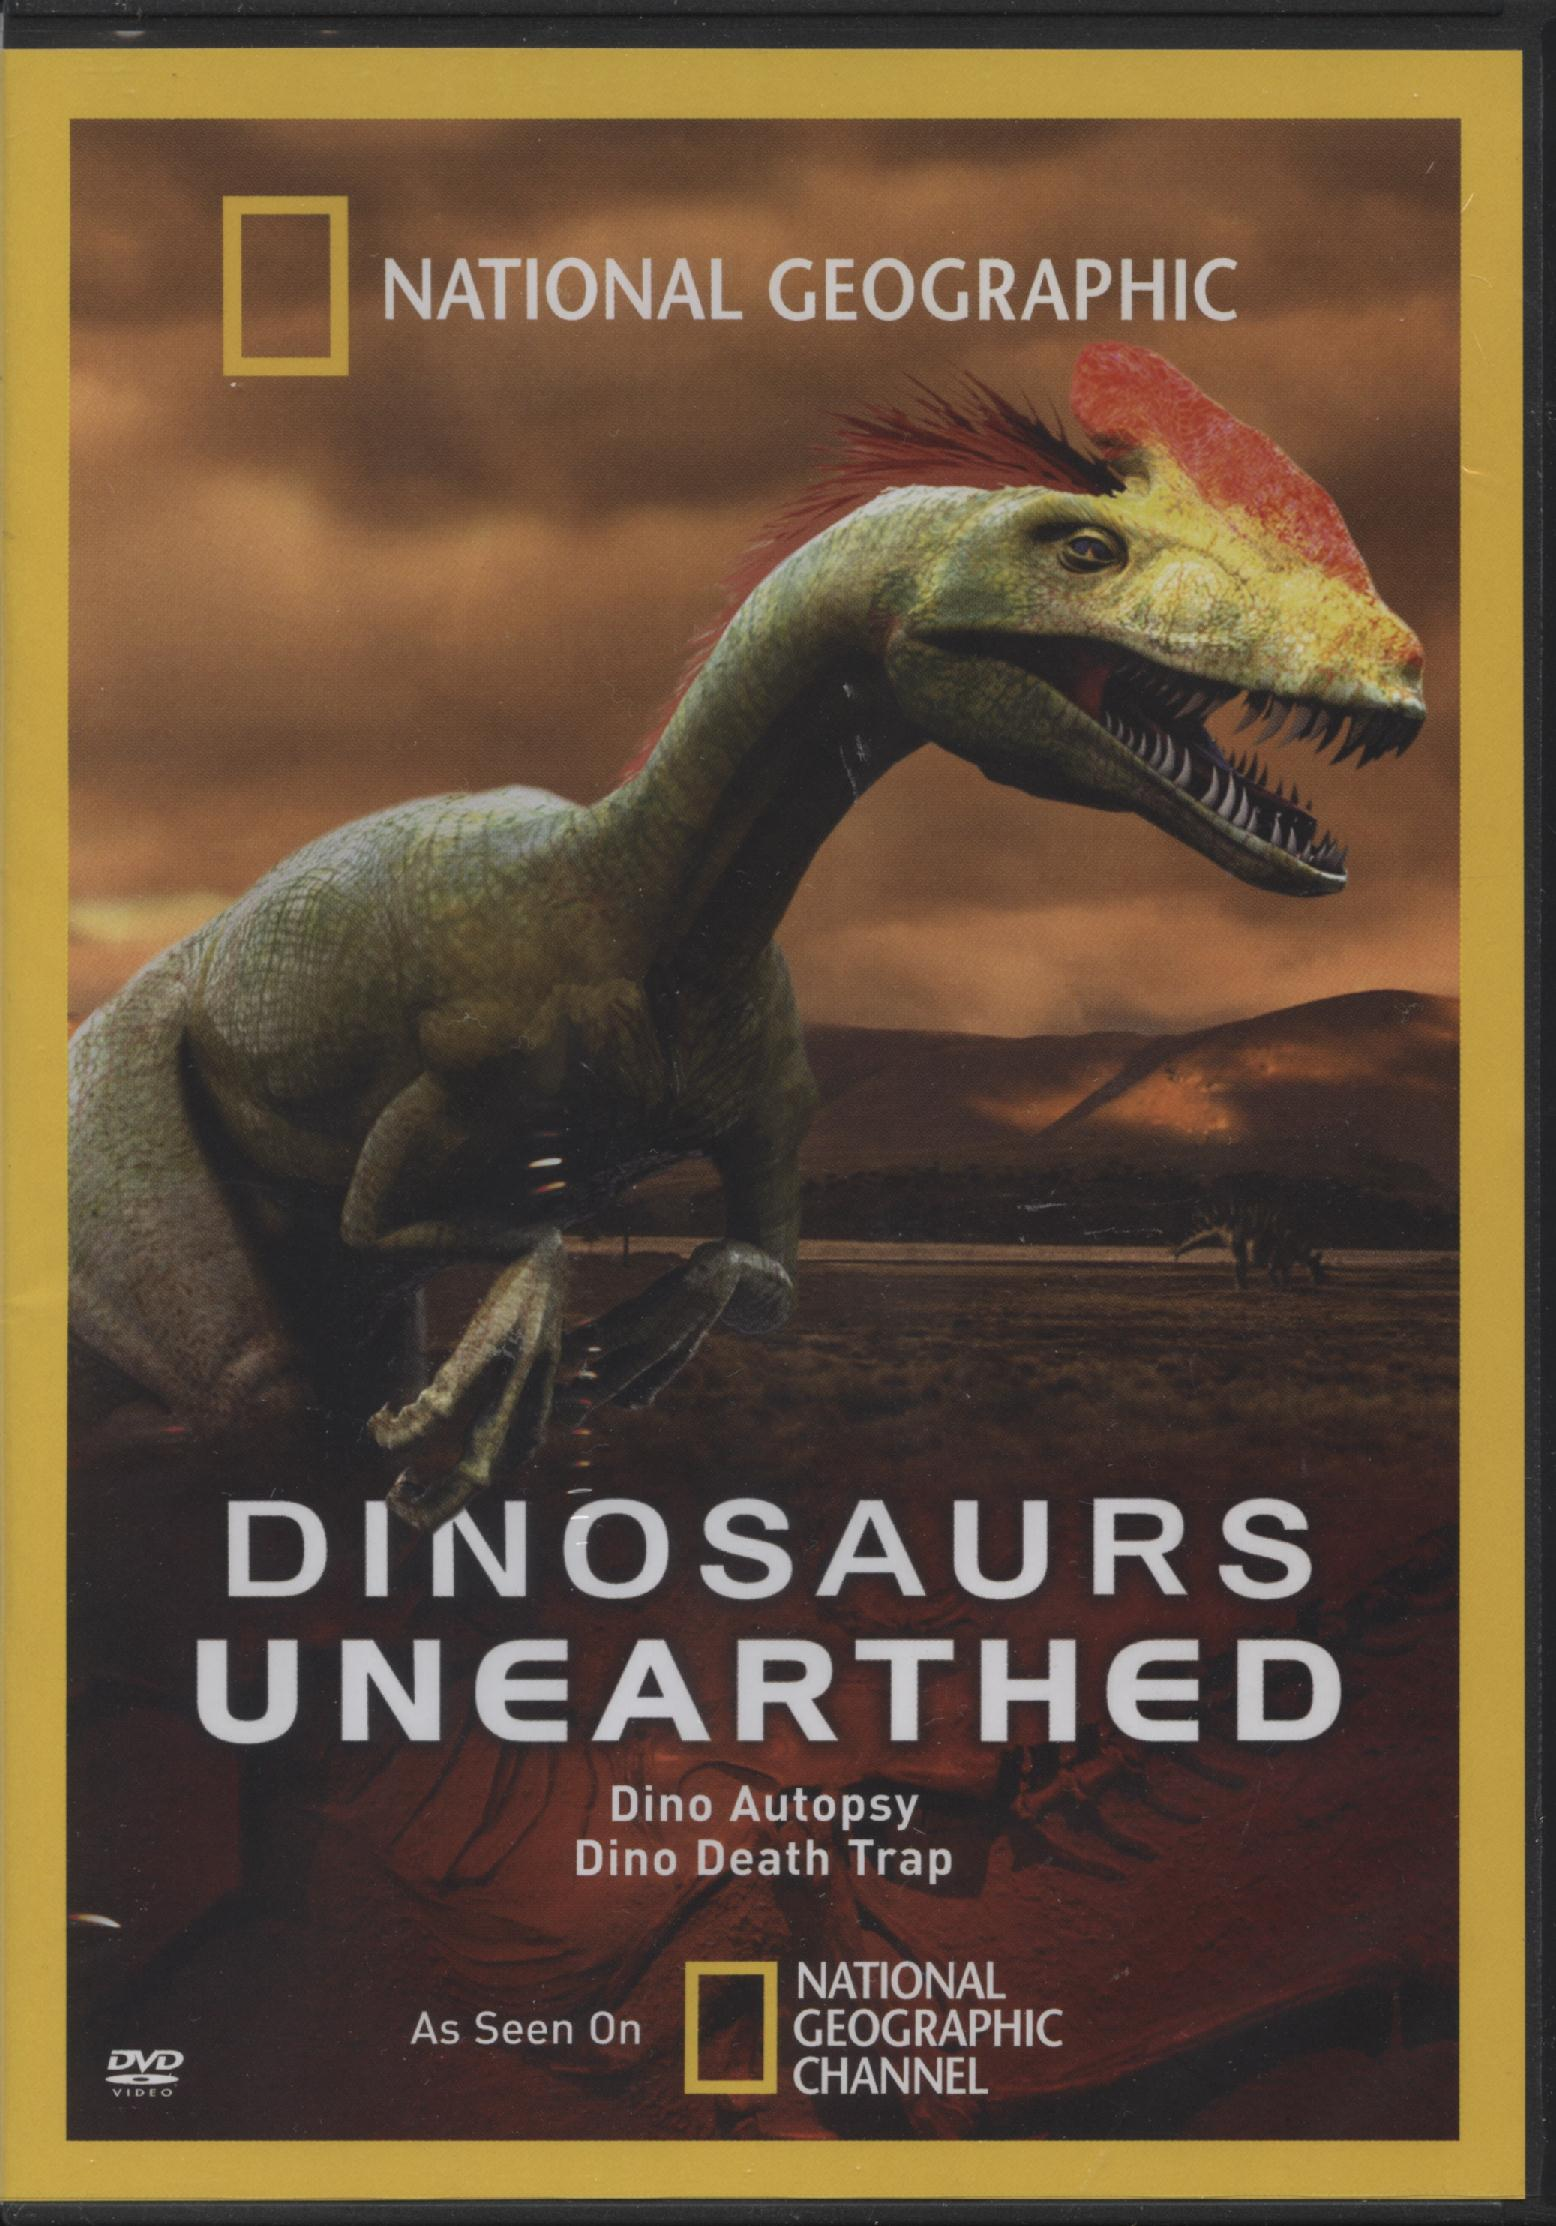 dino unearthed 001.jpg